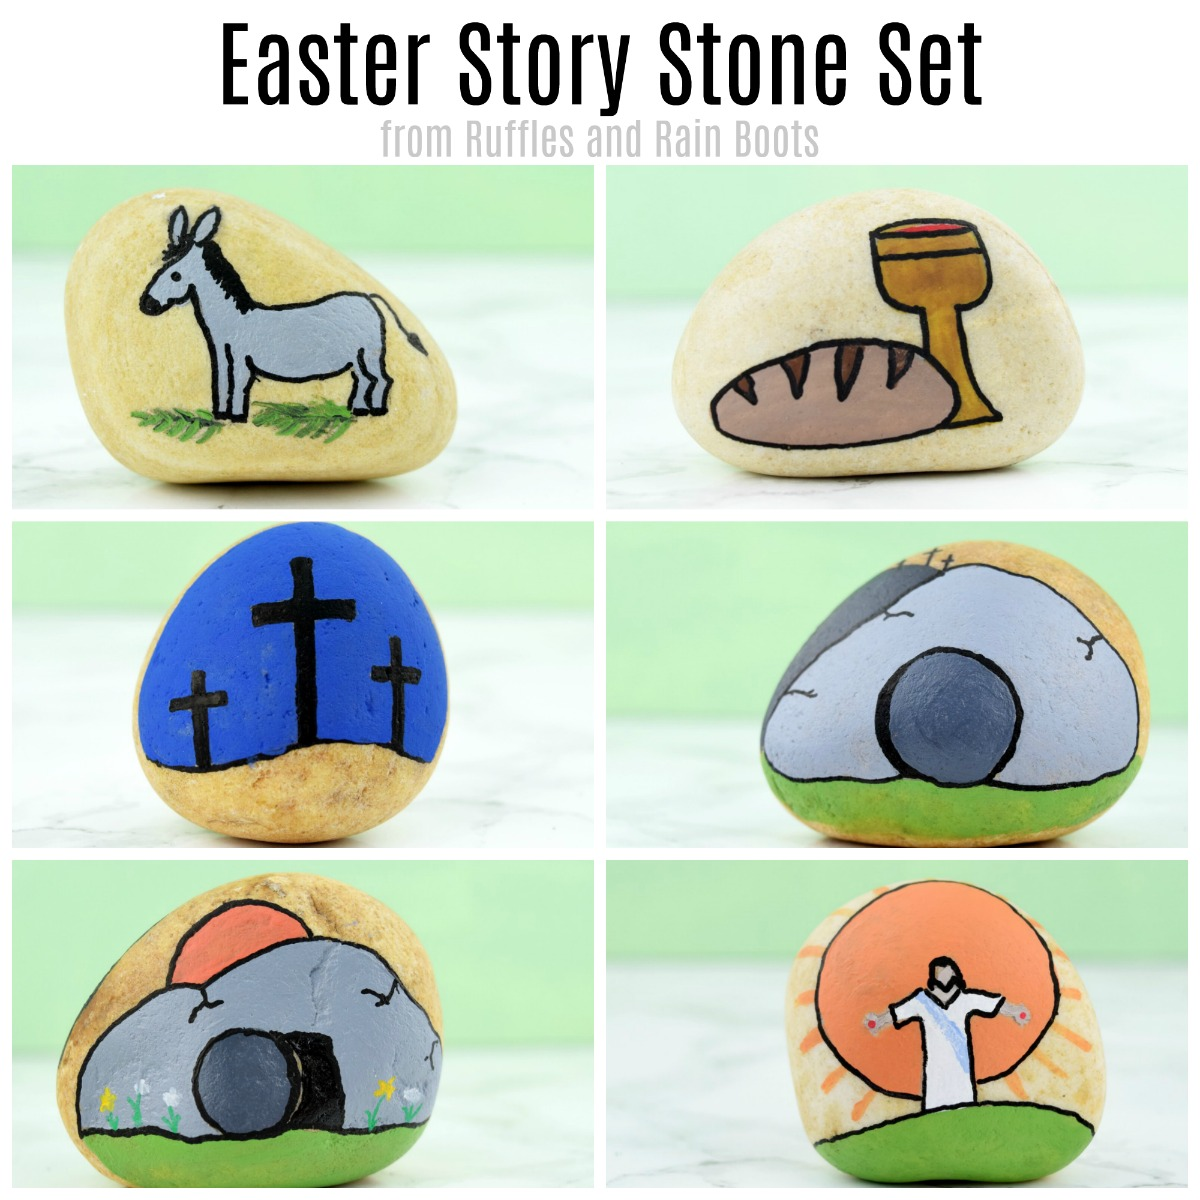 You can make this easy Easter story stone set in minutes for a wonderful way to teach and tell the story of Easter #rockpainting #paintedrocks #rockart #artrocks #rufflesandrainboots #easter #storystones